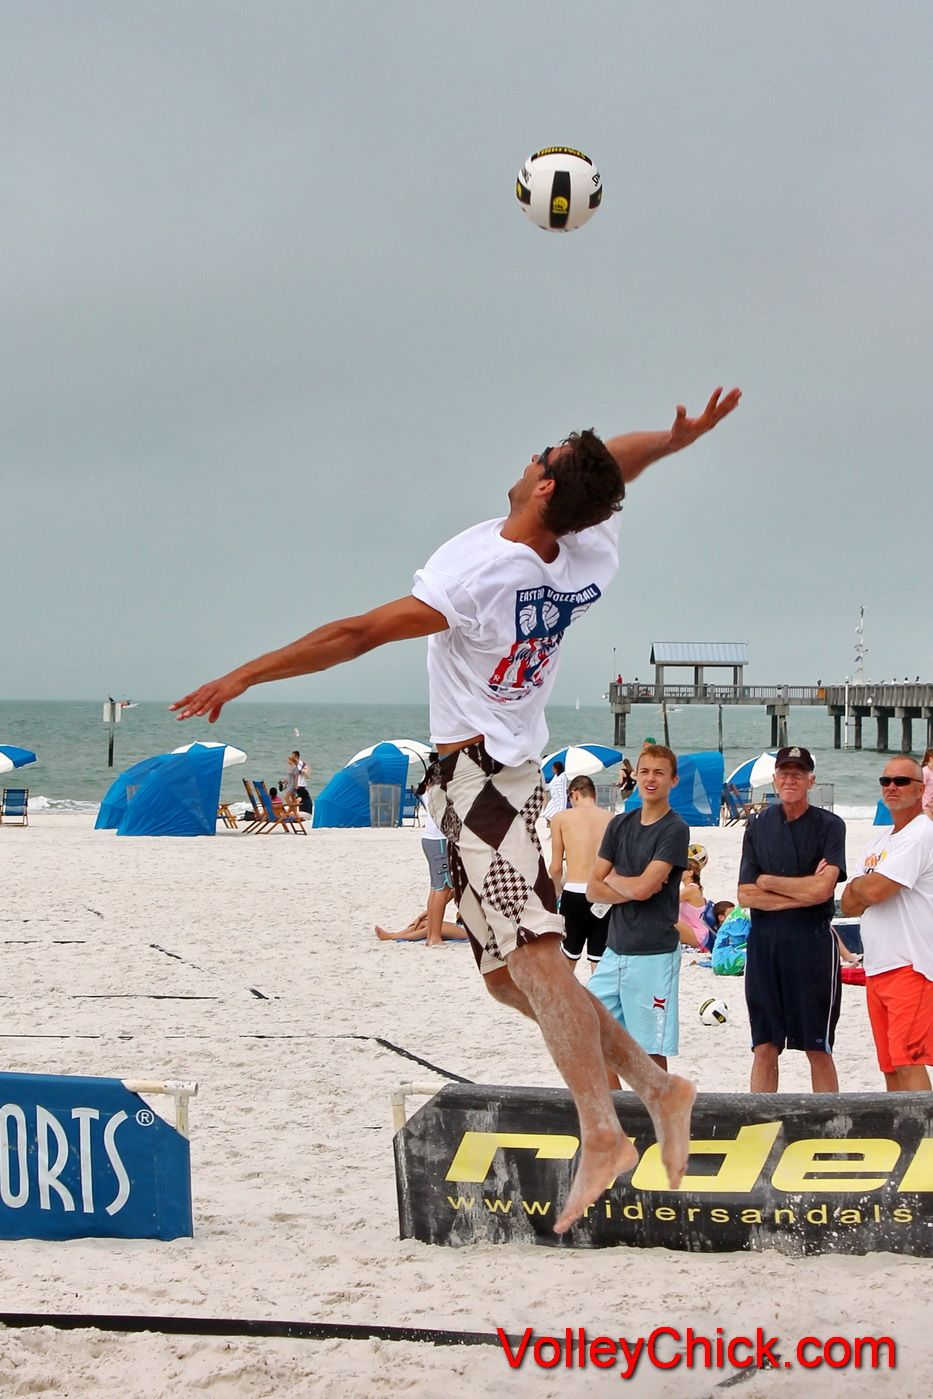 Beach Volleyball Clearwater Beach Florida Volleyball Volleychick Beach Volleyball Clearwater Beach Volleyball